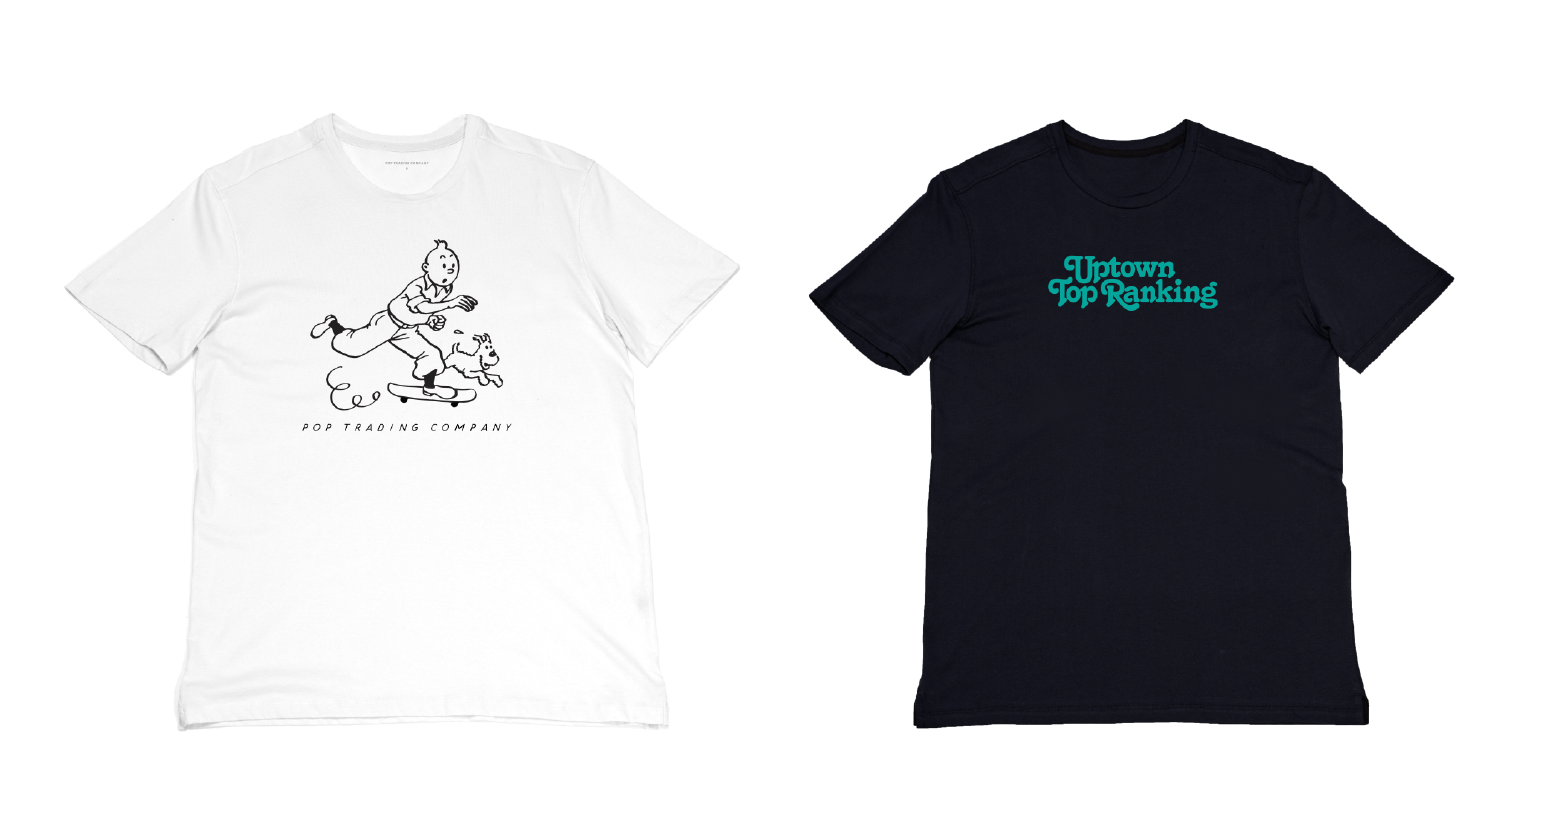 pop-trading-company-folklore-uptown-t-shirt